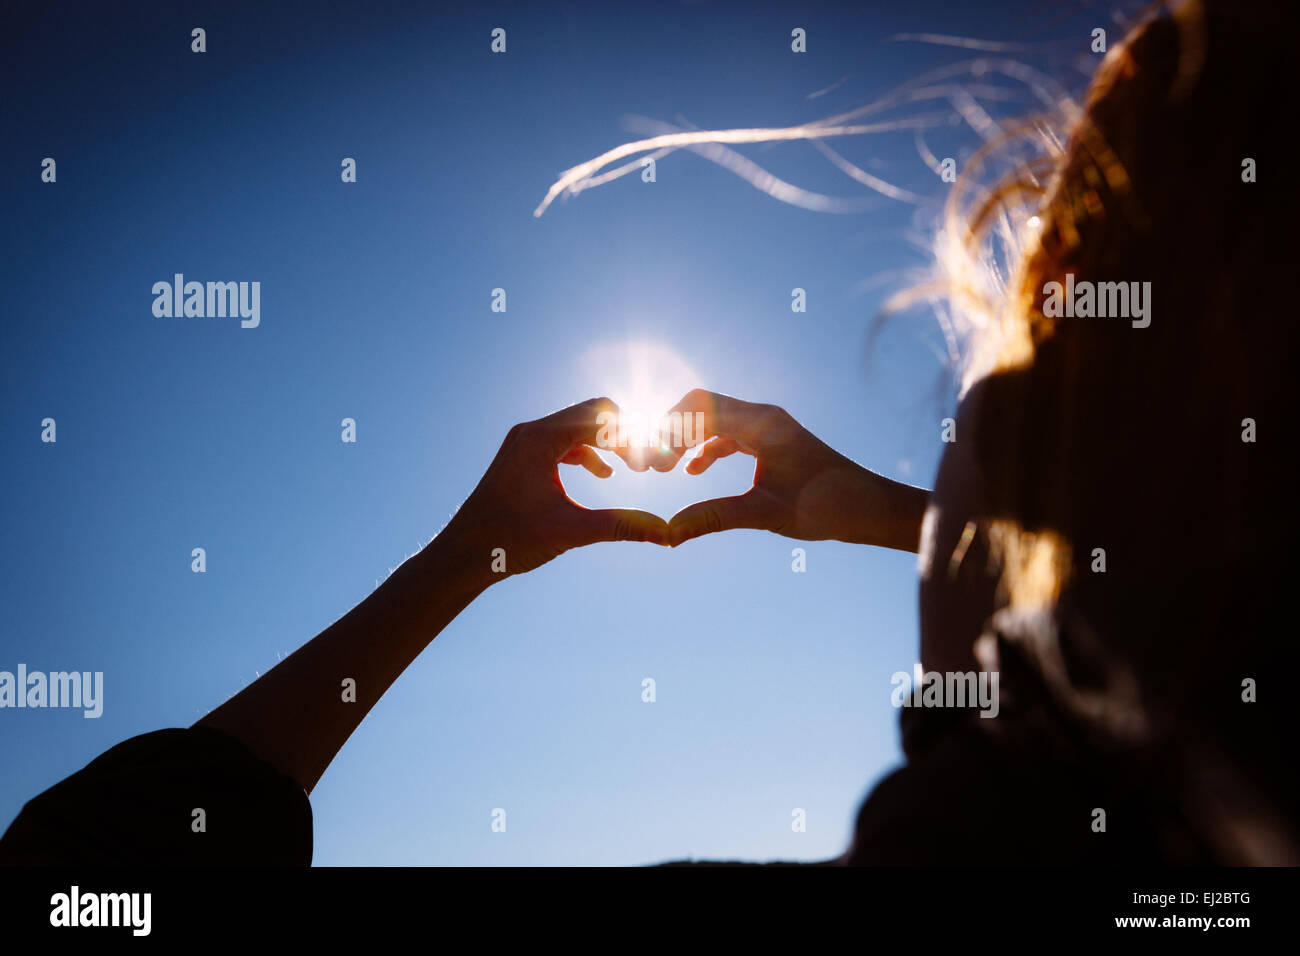 Hands making love shape sign on bright blue sky. - Stock Image